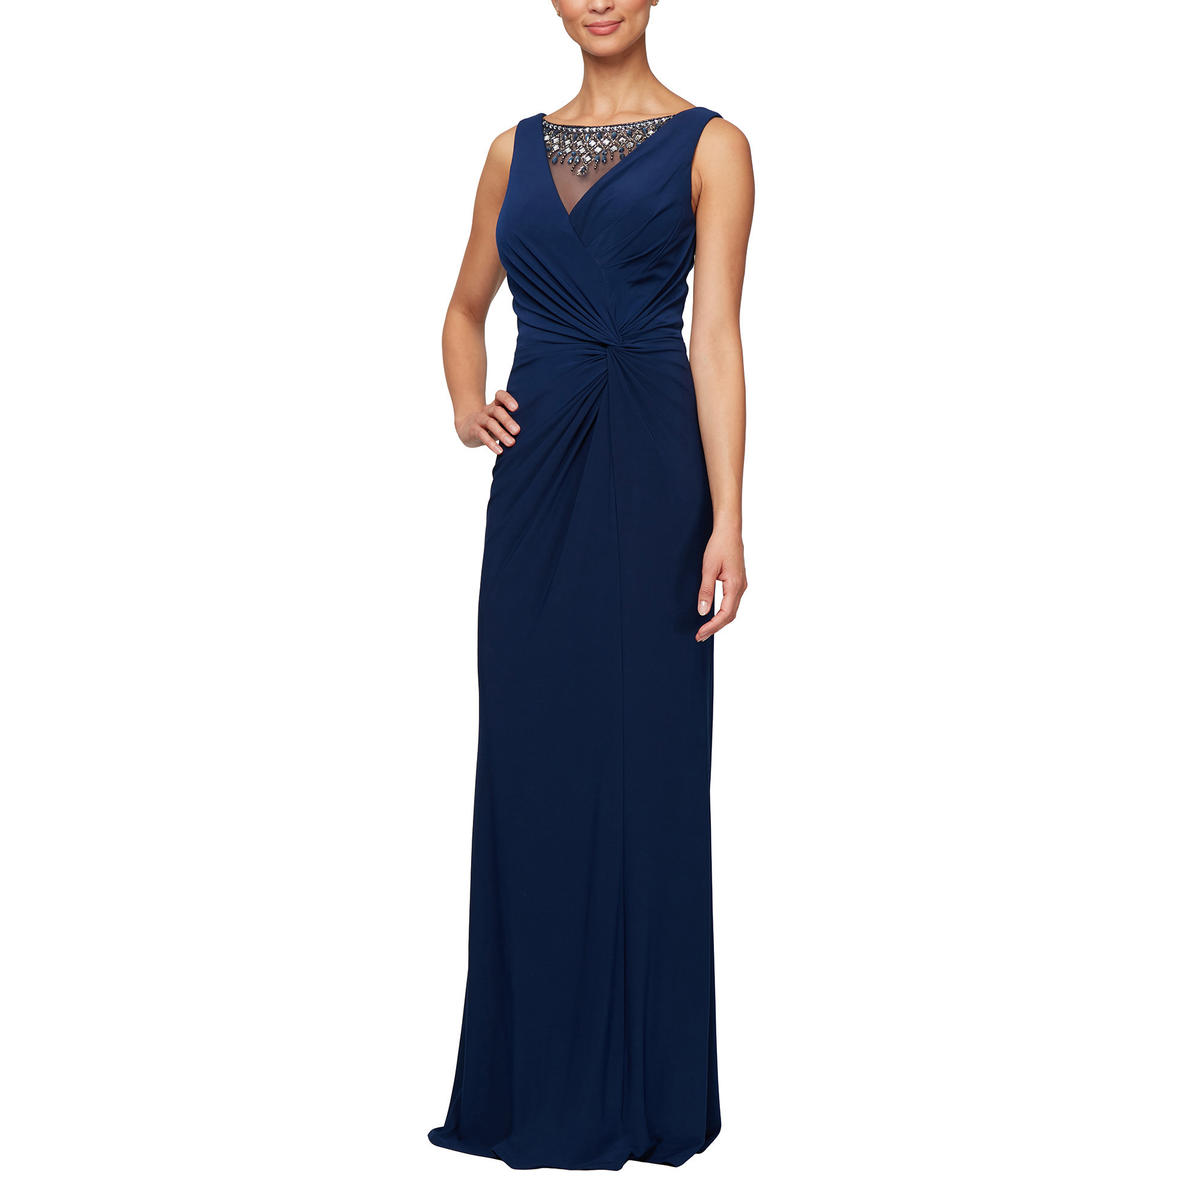 ALEX APPAREL GROUP INC - Jersey Wrap Gown-Bead Neck